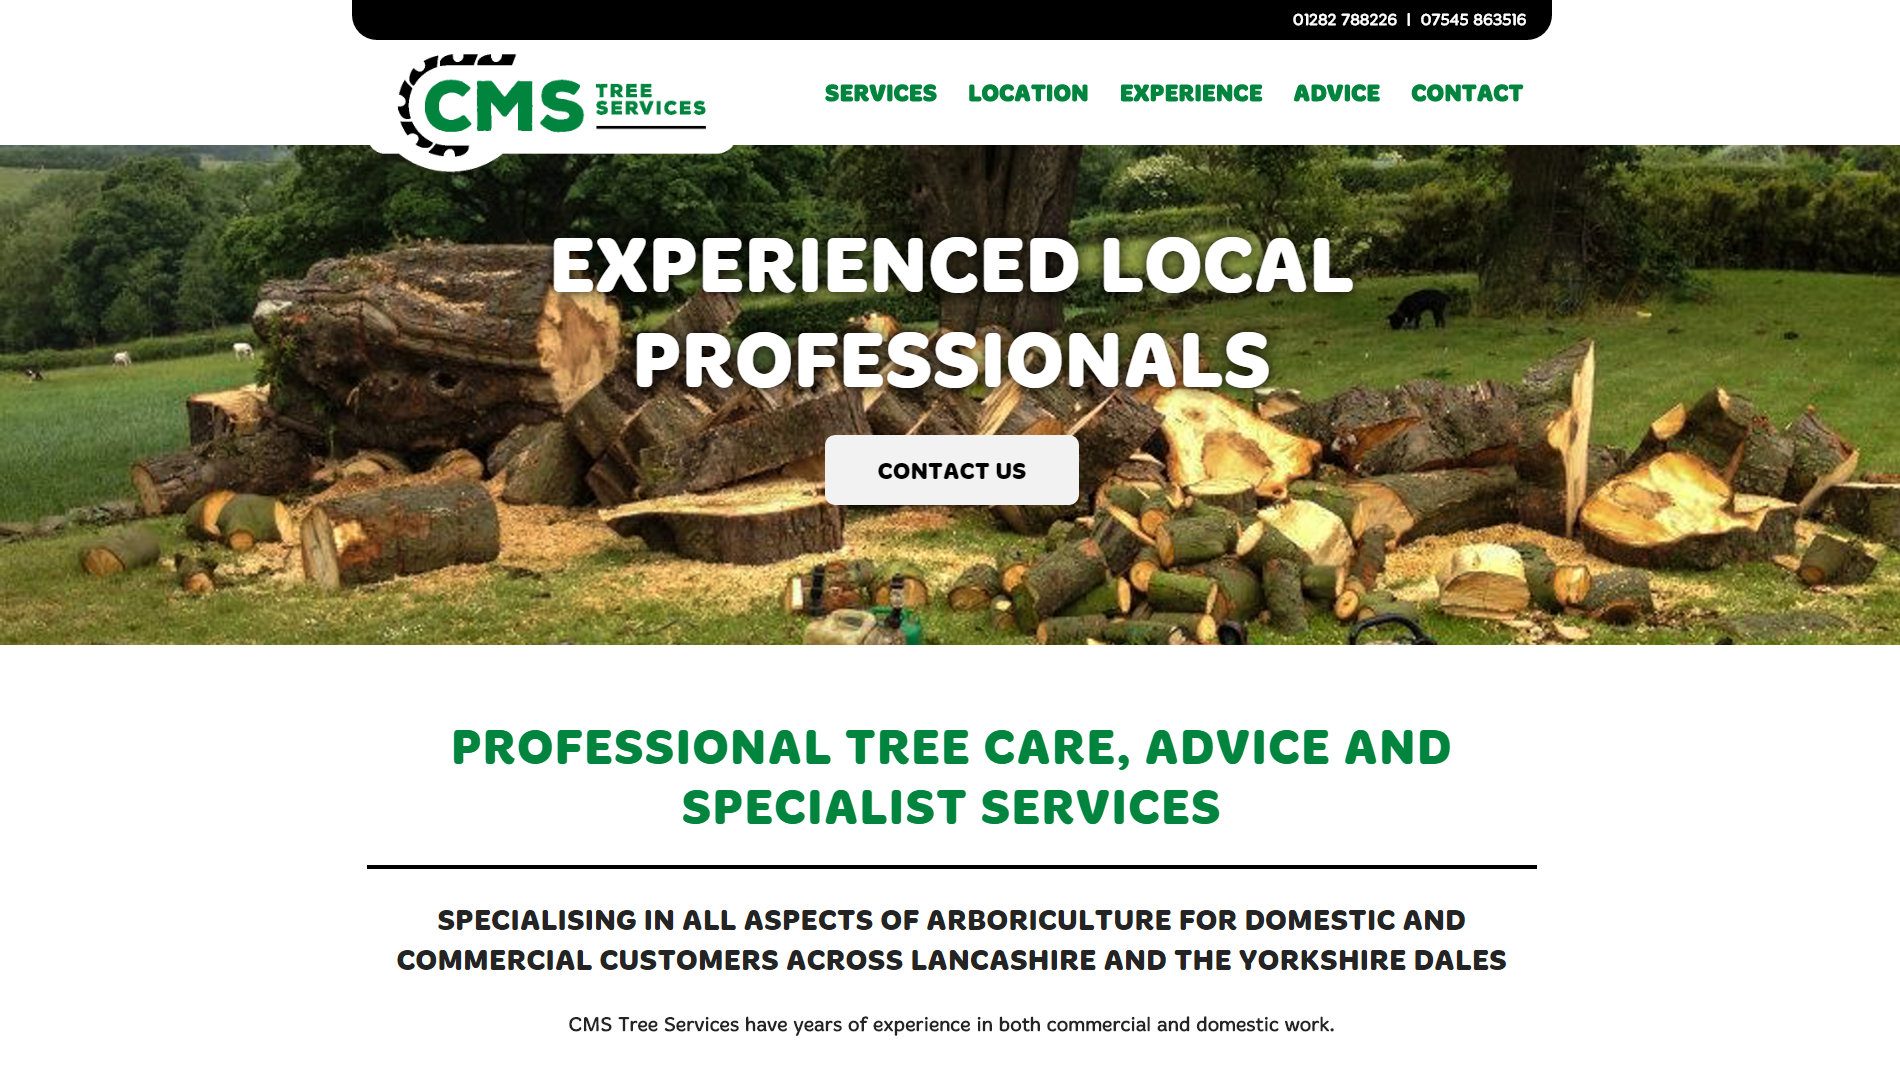 cms-tree-services-homepage